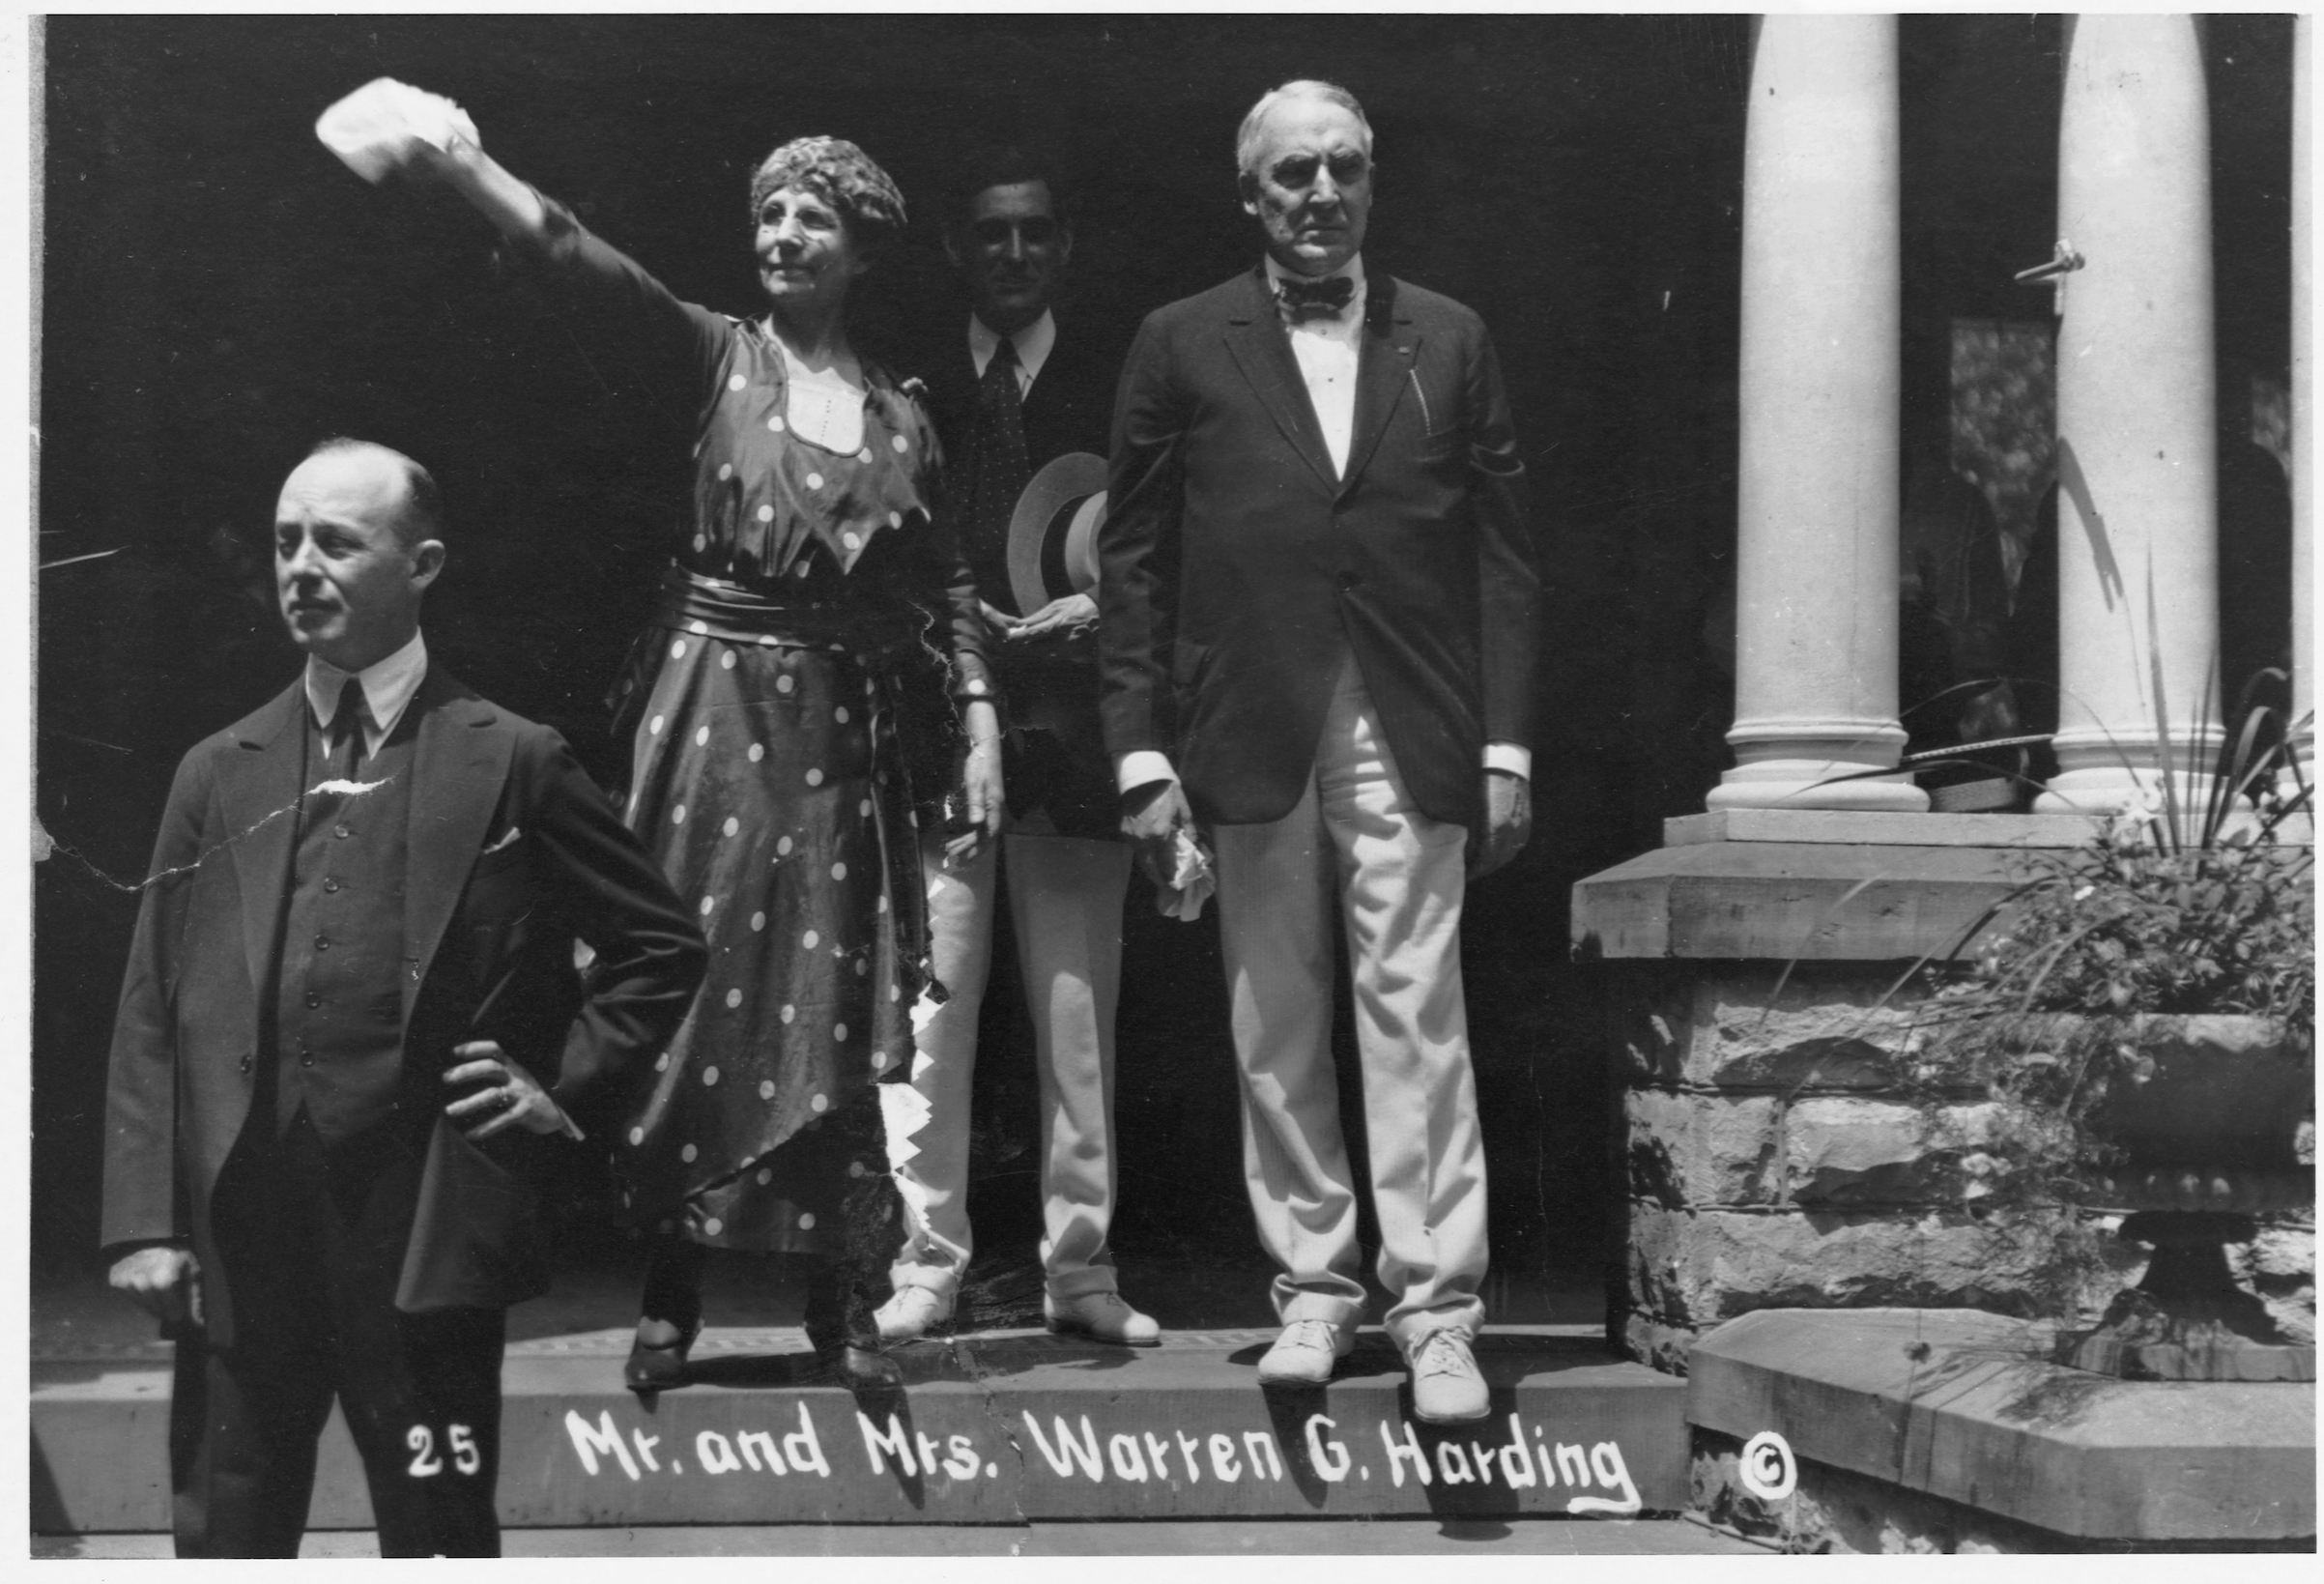 Warren G. Harding and his wife Florence on the front porch of the Harding house in Marion, Ohio, from which Harding conducted his successful campaign for the Presidency.